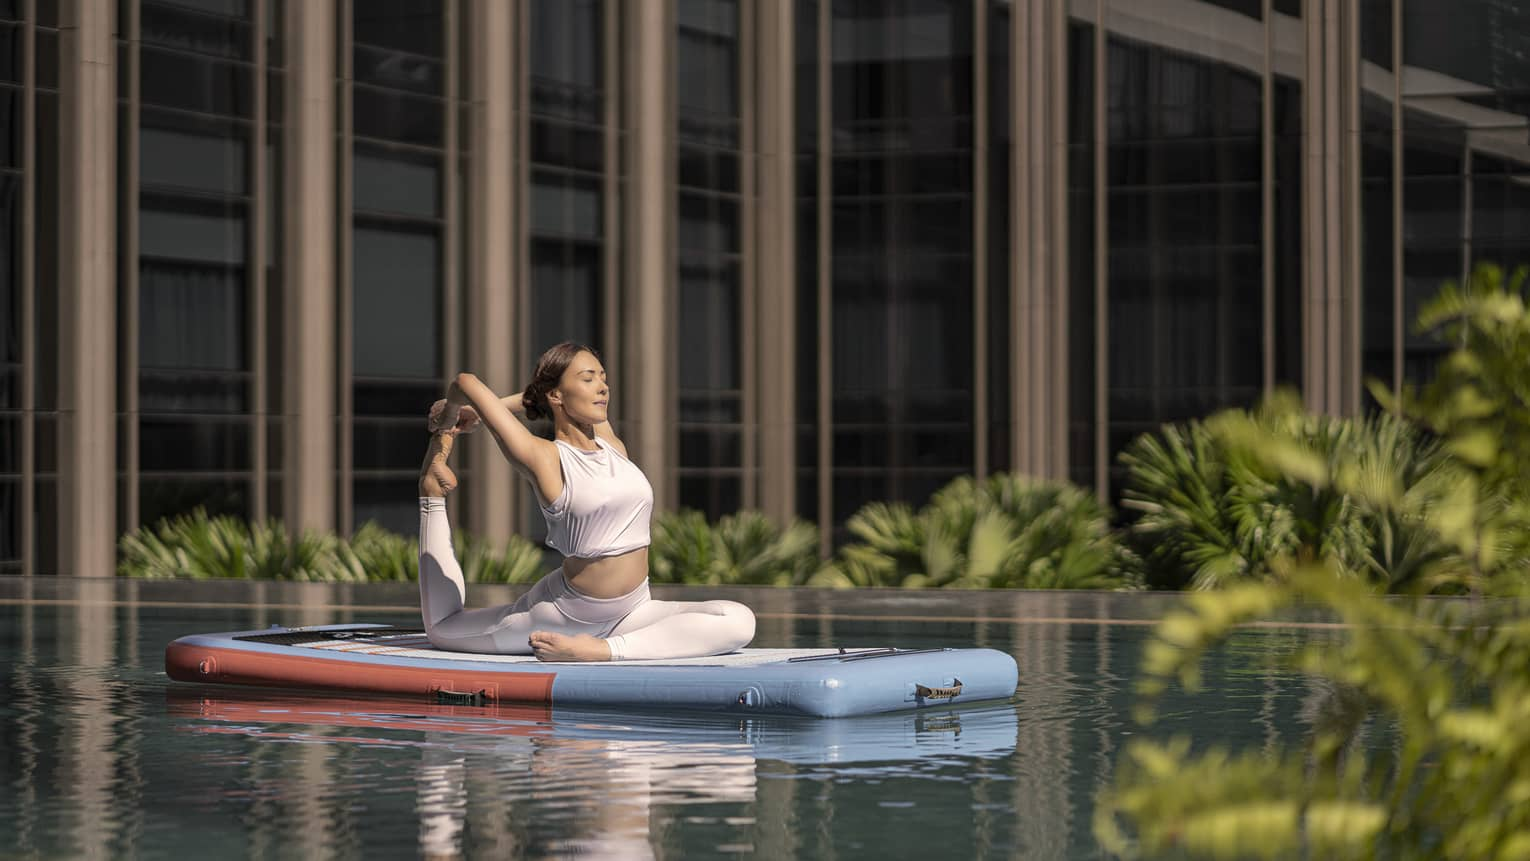 Woman doing a yoga pose on a floating paddle board in hotel pool